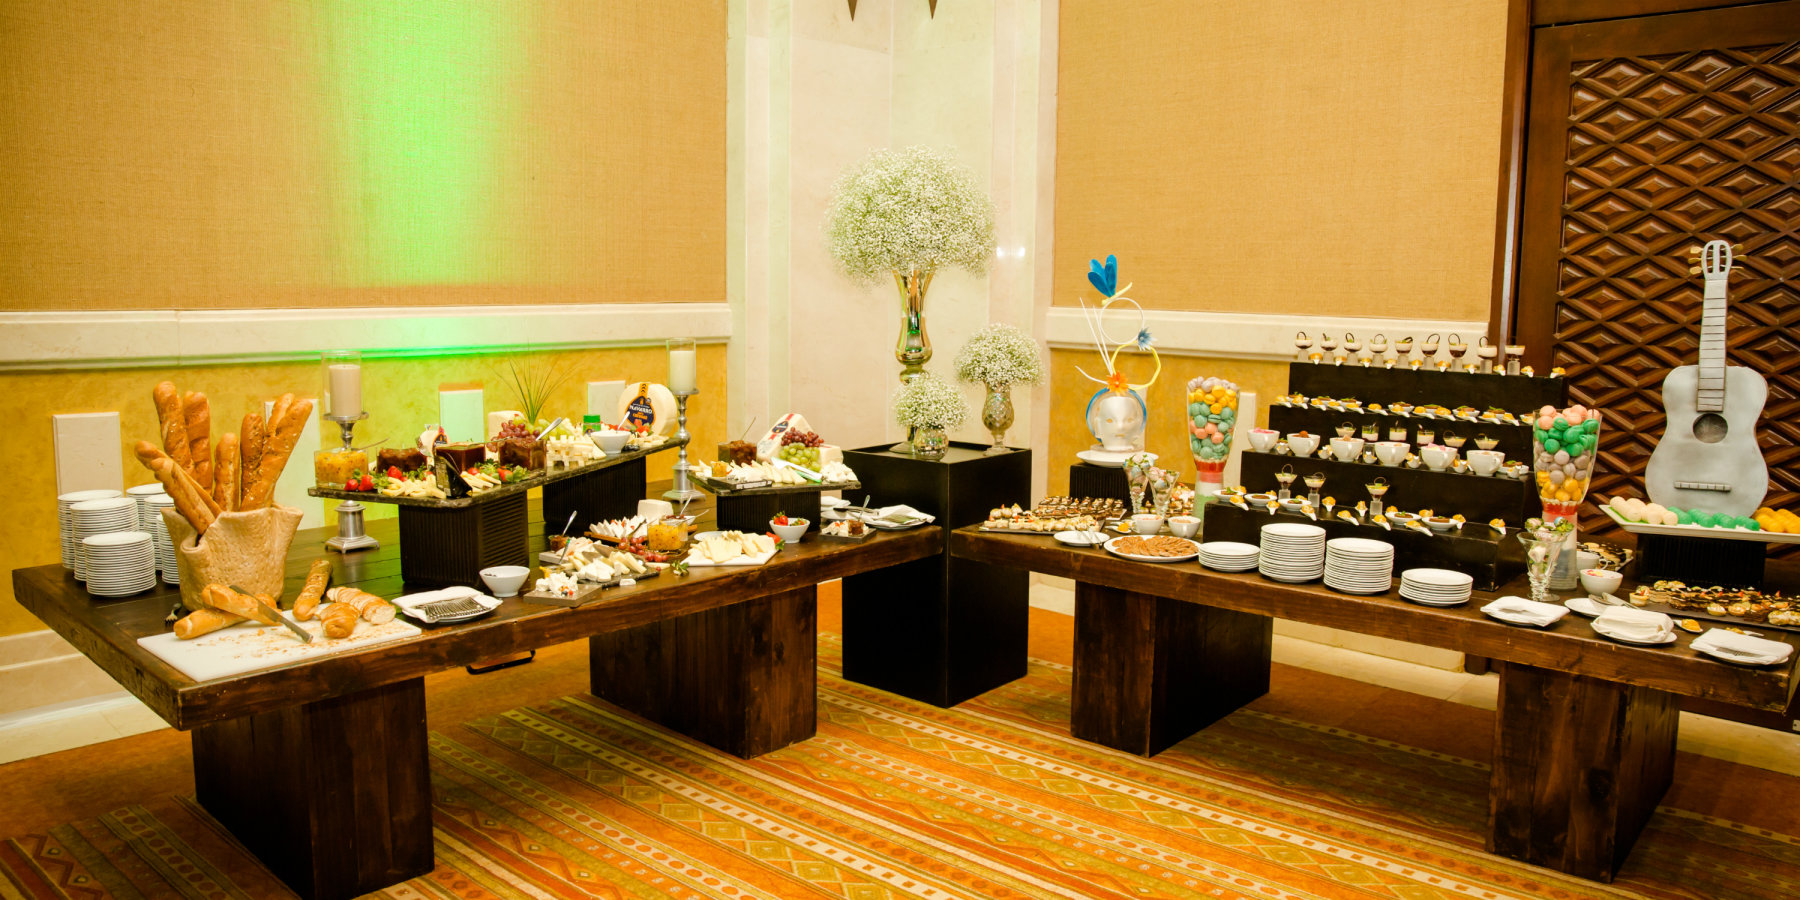 Kitchen Fiesta, a Culinary Event That Will Never Be Forgotten